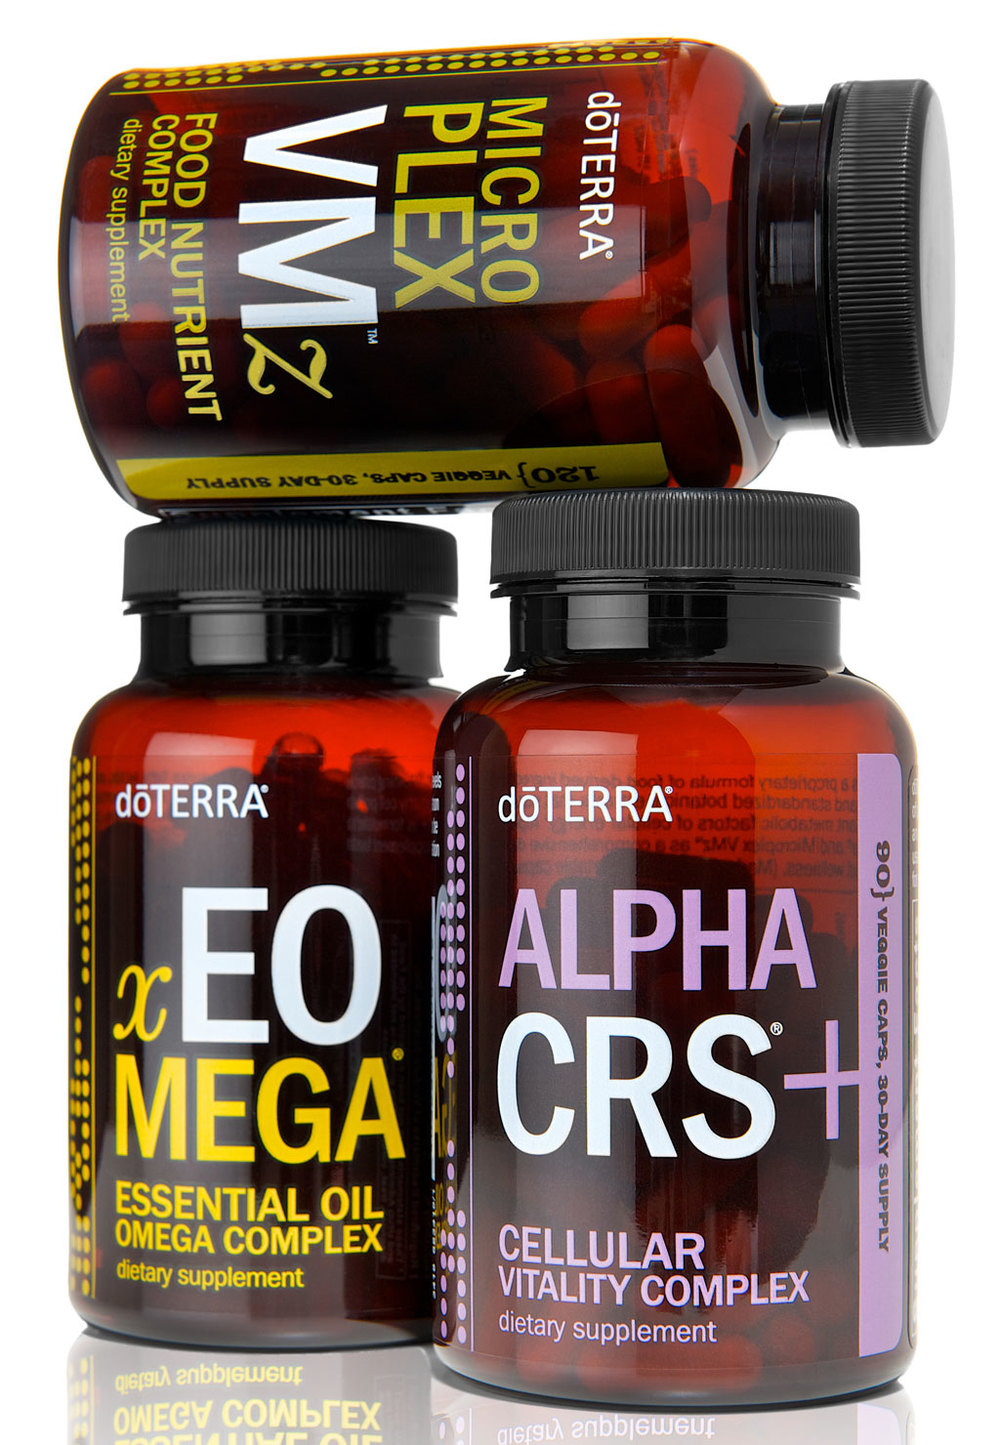 benefits of doterra lifelong vitality pack.jpg